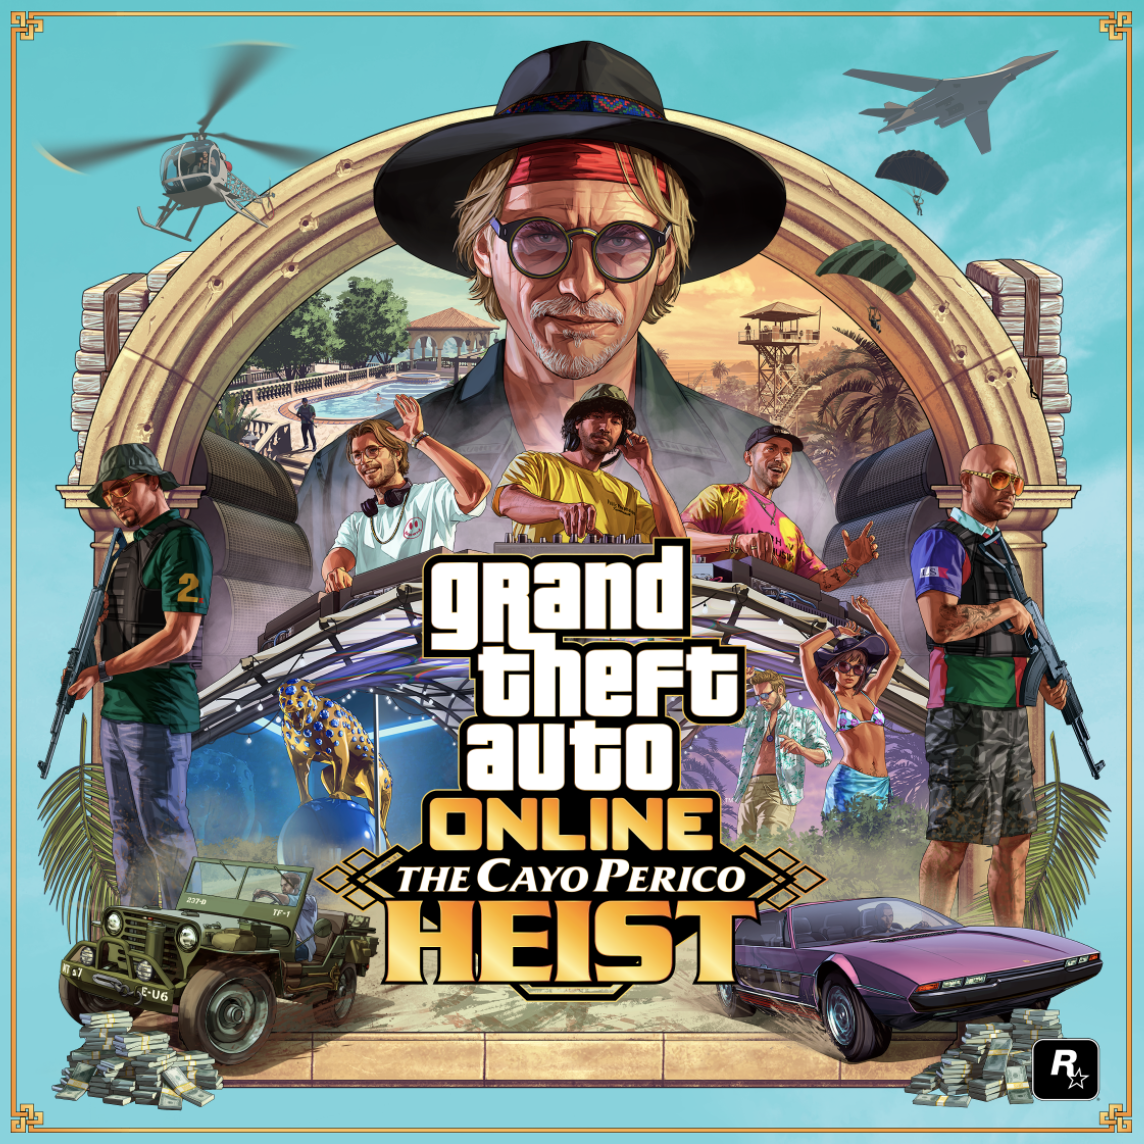 Dr.Dre & Jimmy Iovine Appear In 'GTA Online The Cayo Perico Heist' Update